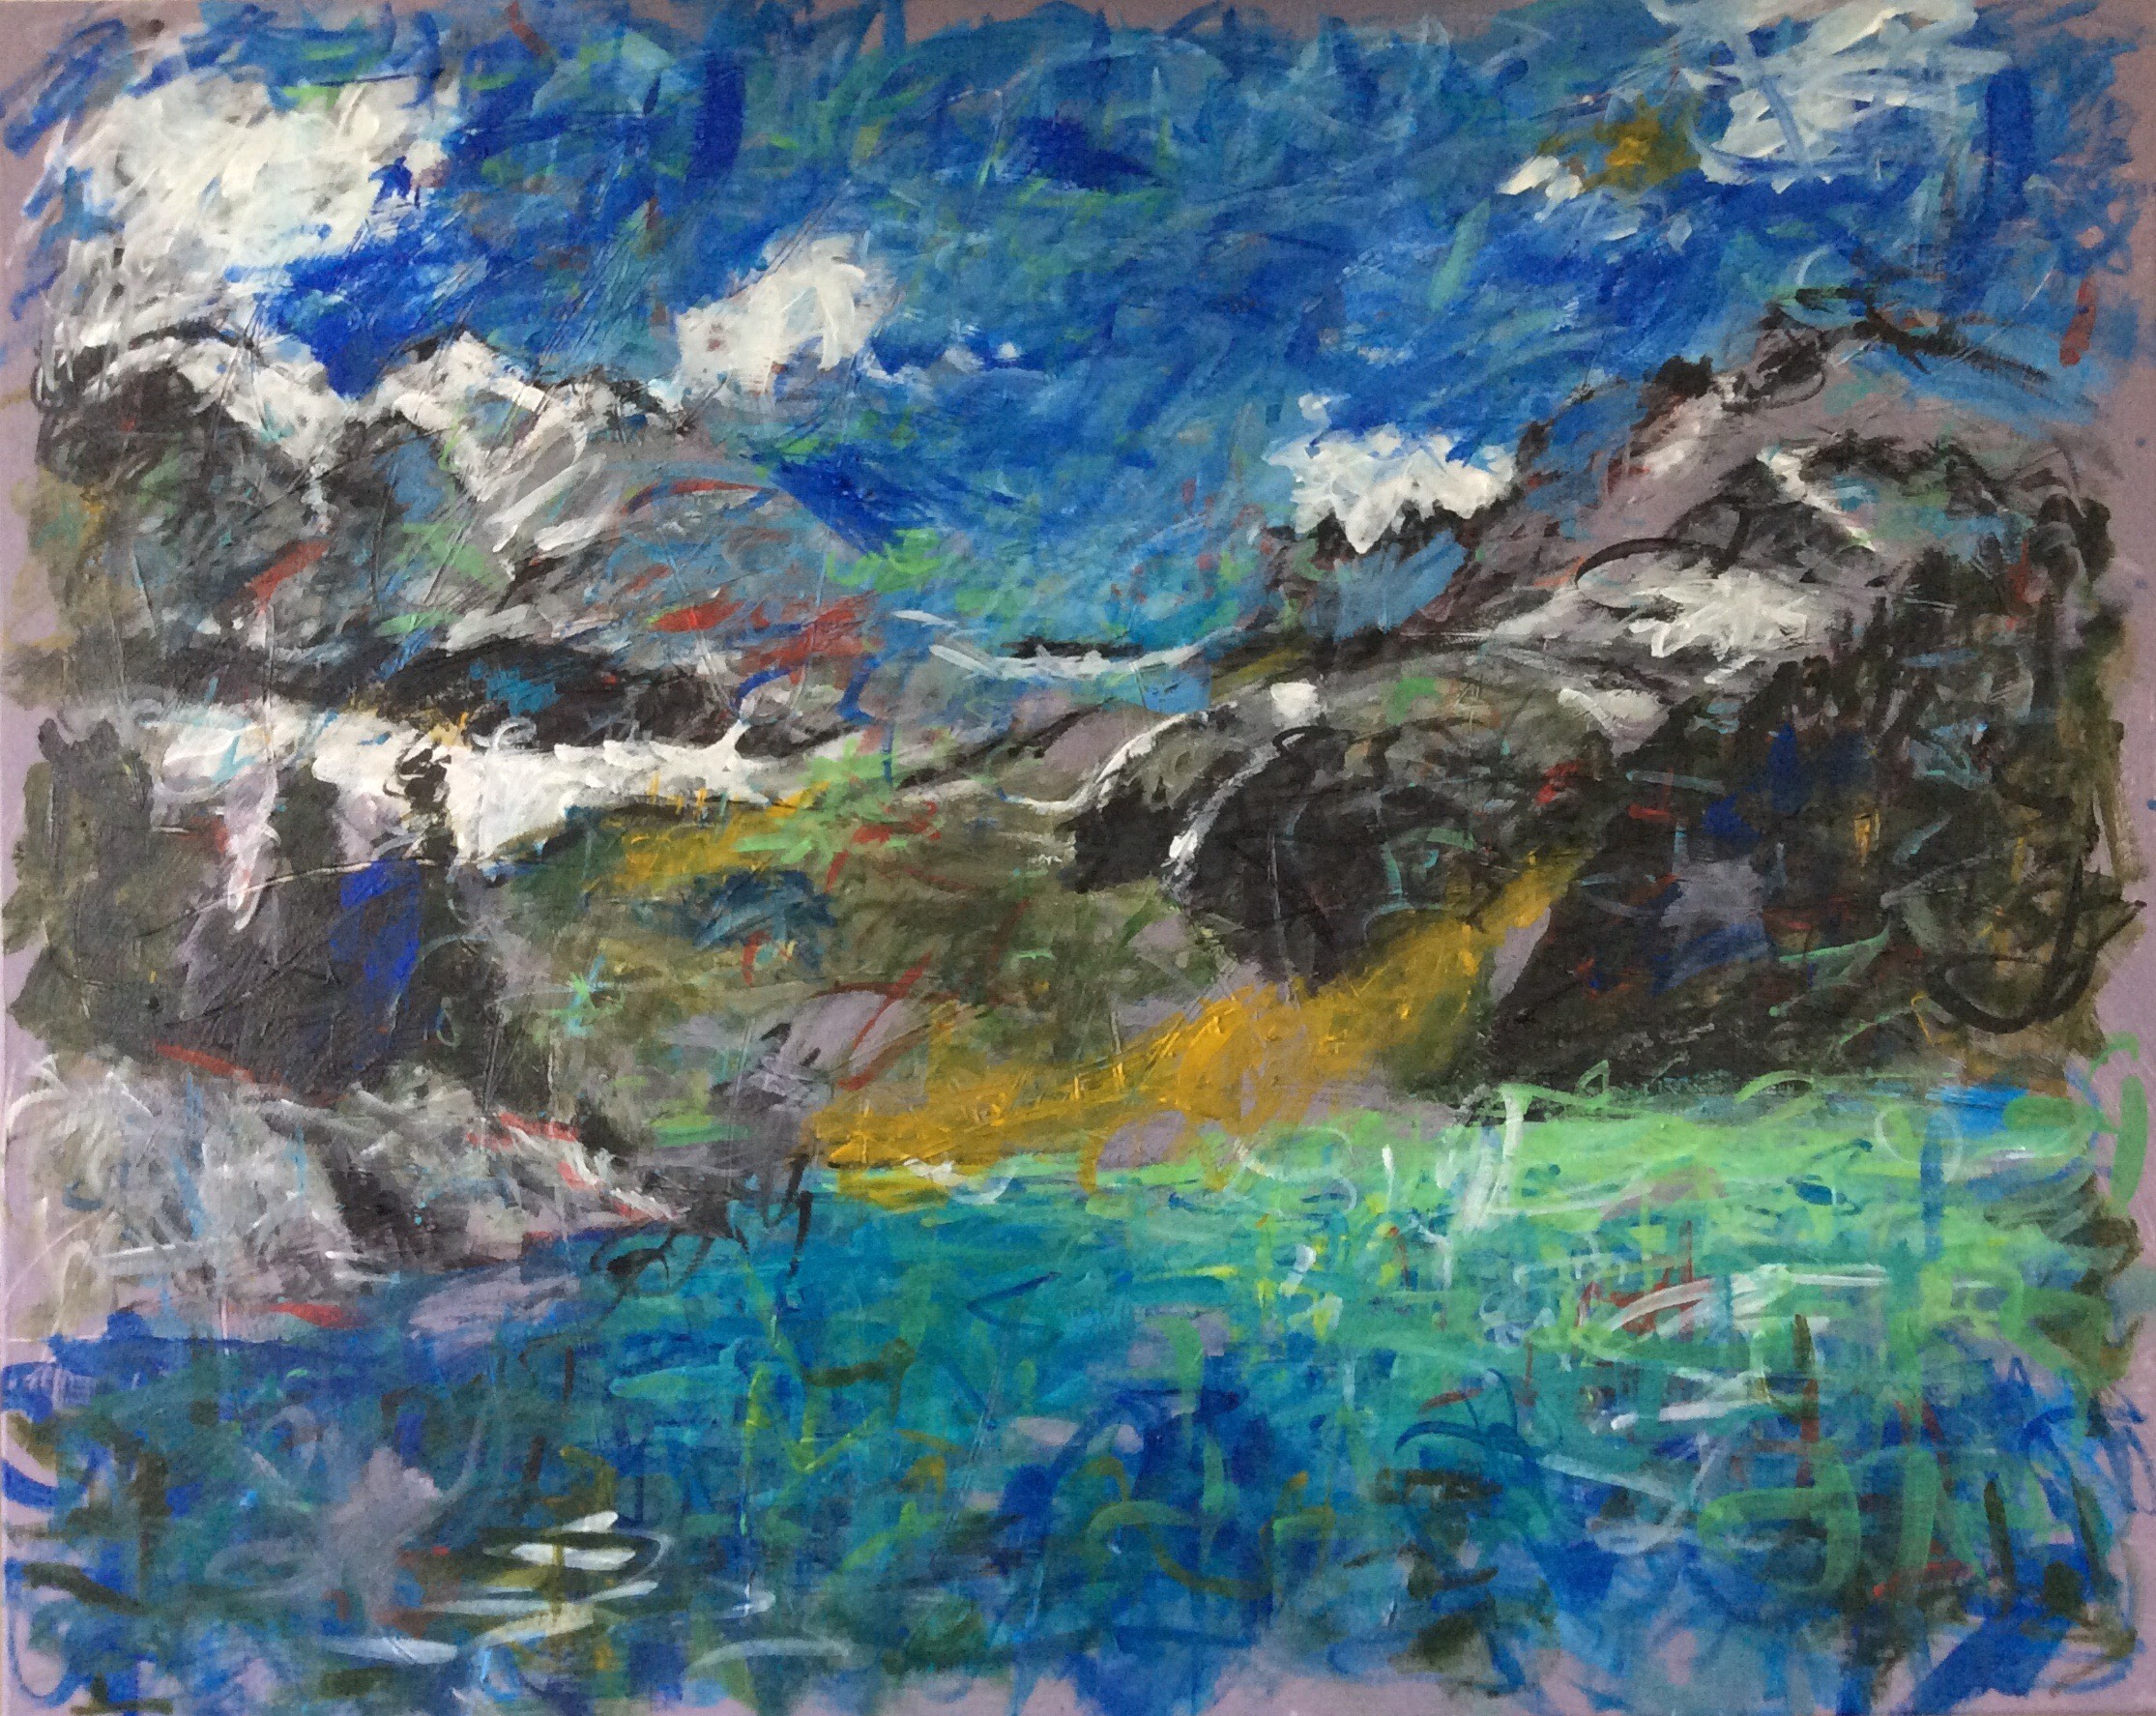 Phyllis Anderson,  Mountain Lake,  Acrylic on Canvas, 24 x 30 inches